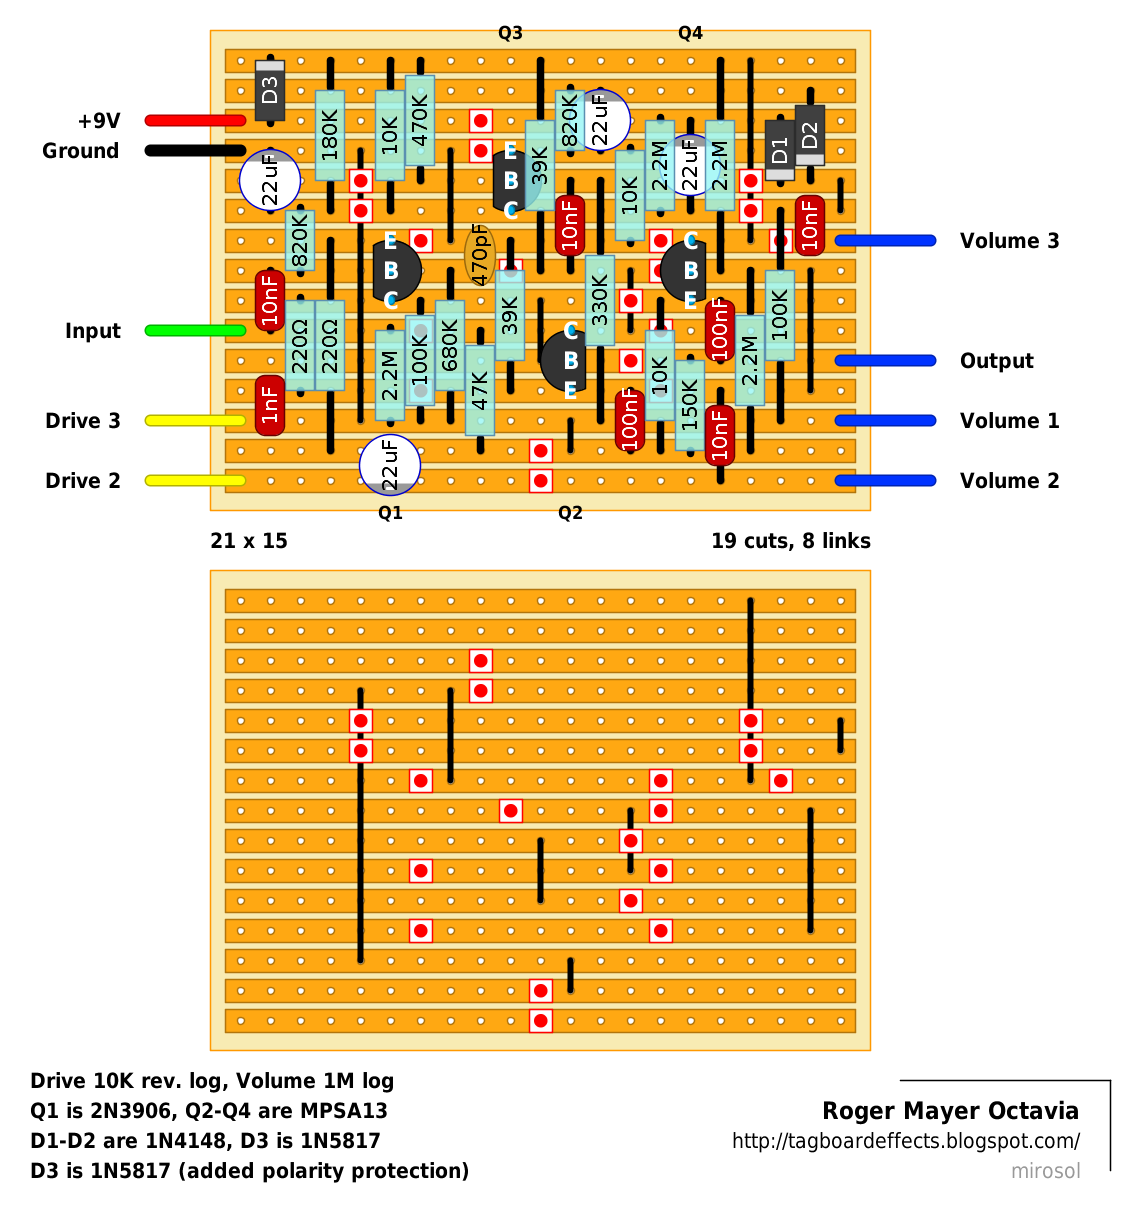 Guitar Fx Layouts February 2014 Heres A Closeup Of The Wah Circuit Mr Mayer Has Chronological History Octavia Octavio Posted On His Site So Read More About It Here